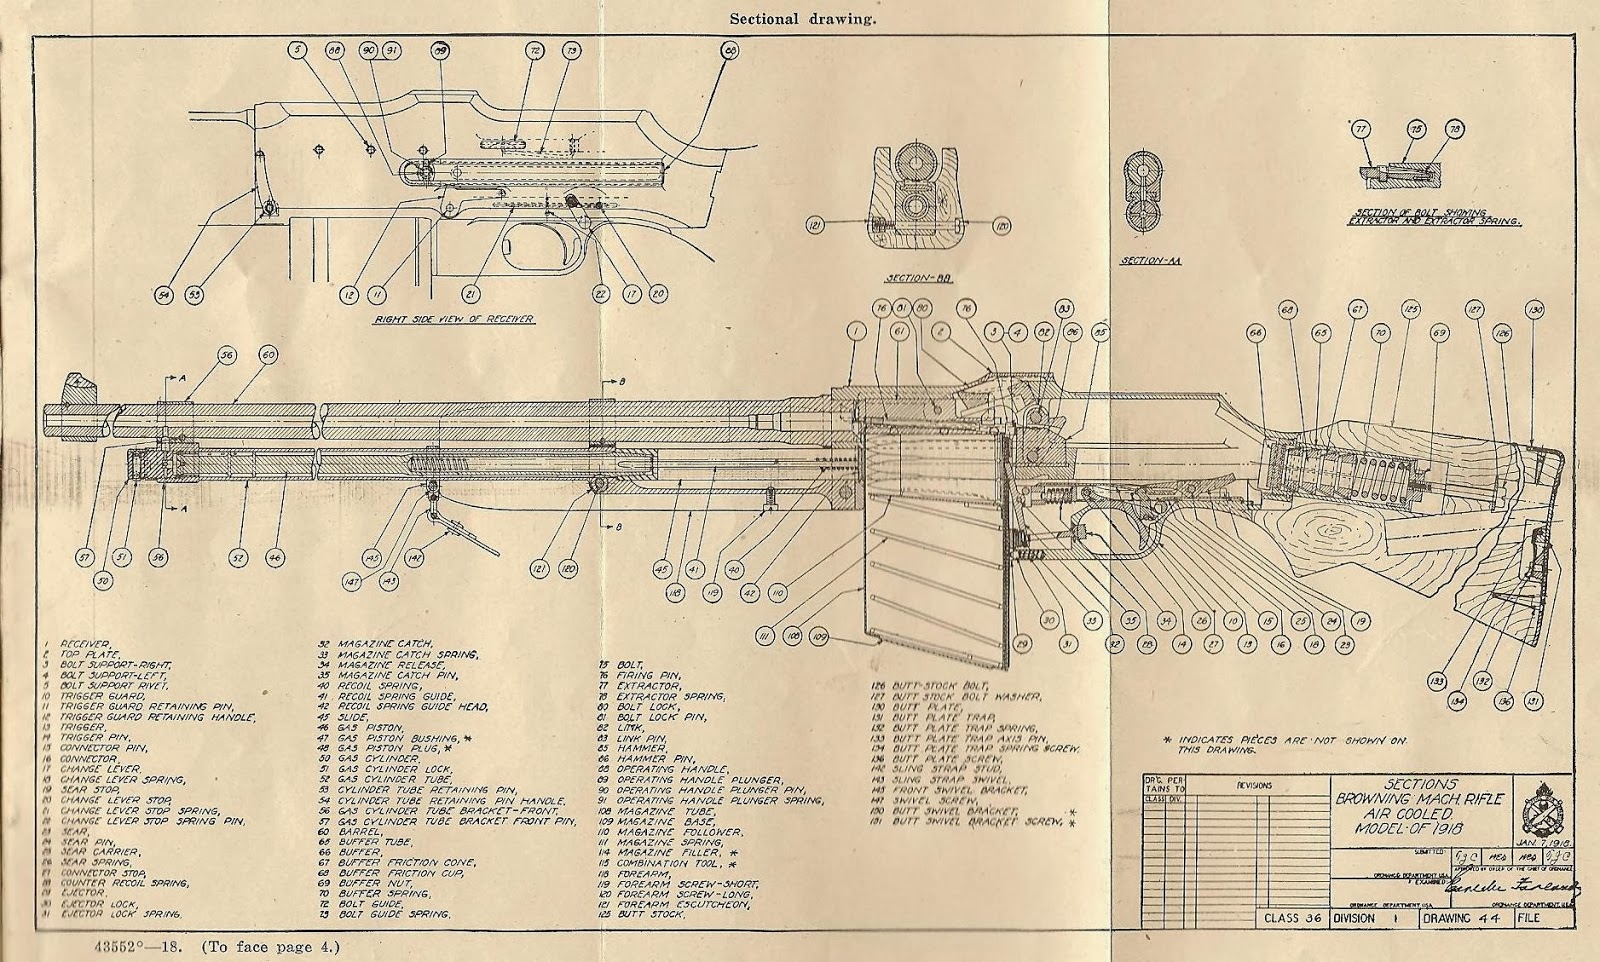 Parts Diagram of the Model 1918 BAR Browning Automatic Rifle